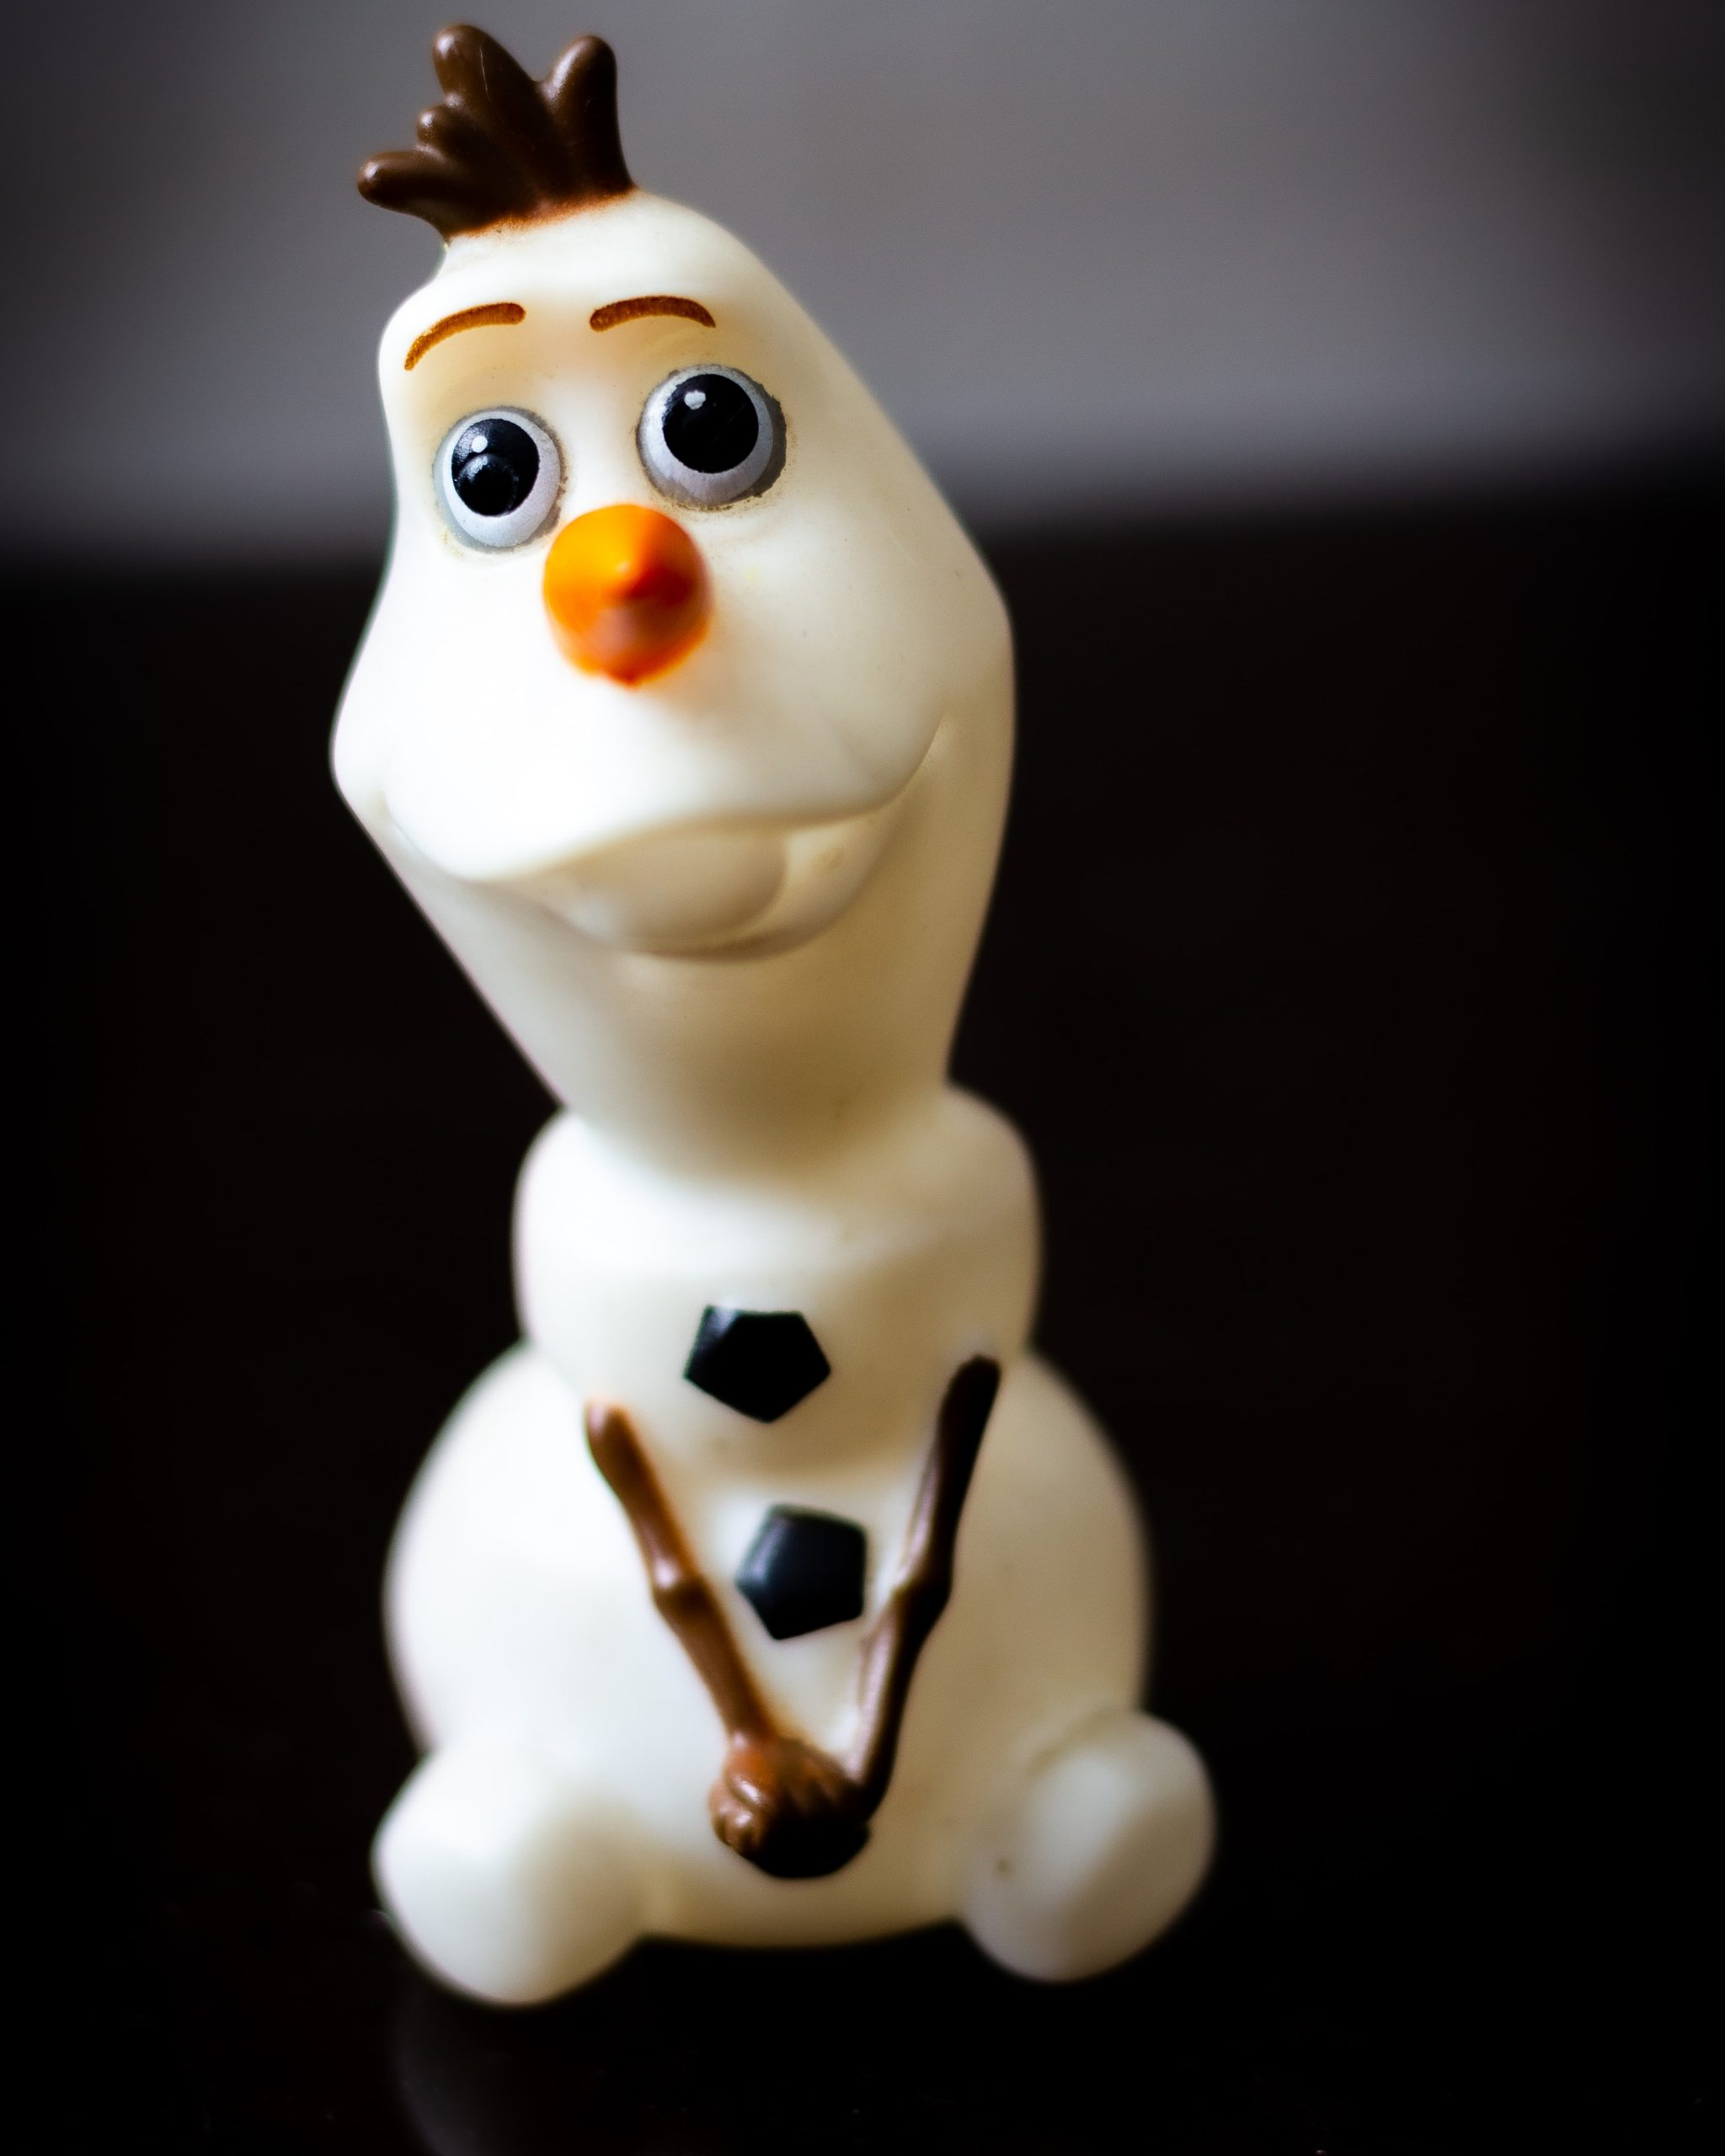 Miniature of Olaf from Frozen movie